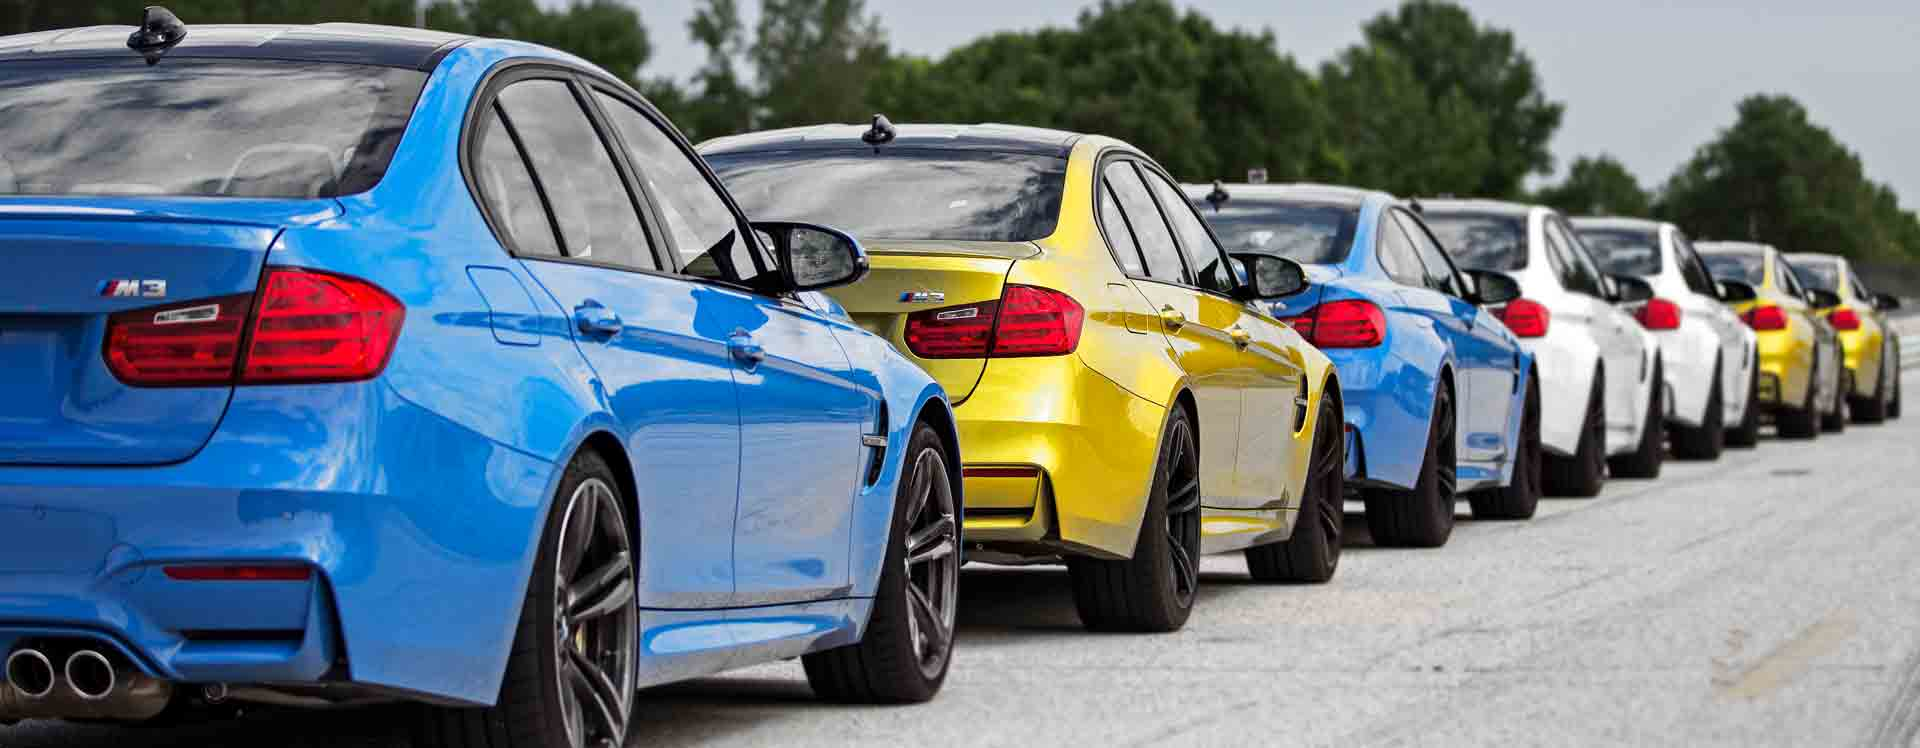 BMW M3 Maintenance Cost and Schedule Guide